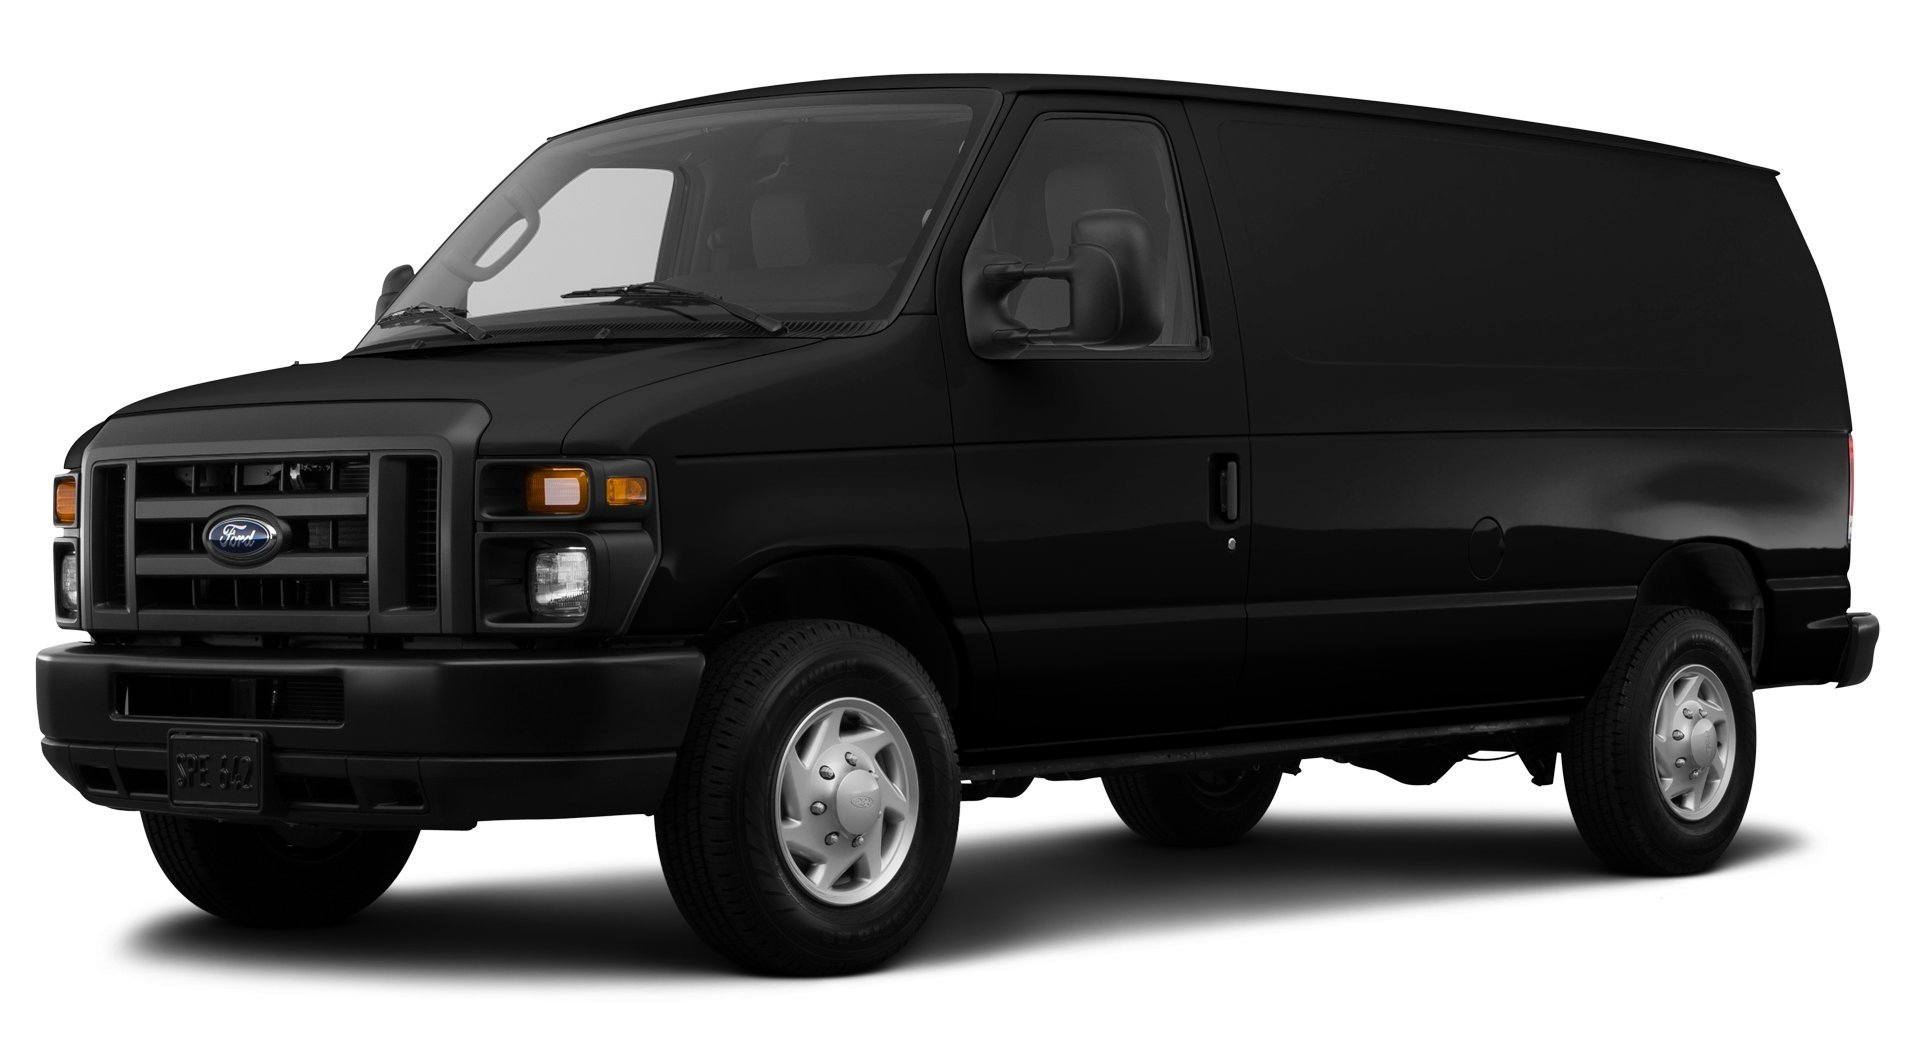 2014 ford e 350 super duty reviews images and specs vehicles. Black Bedroom Furniture Sets. Home Design Ideas